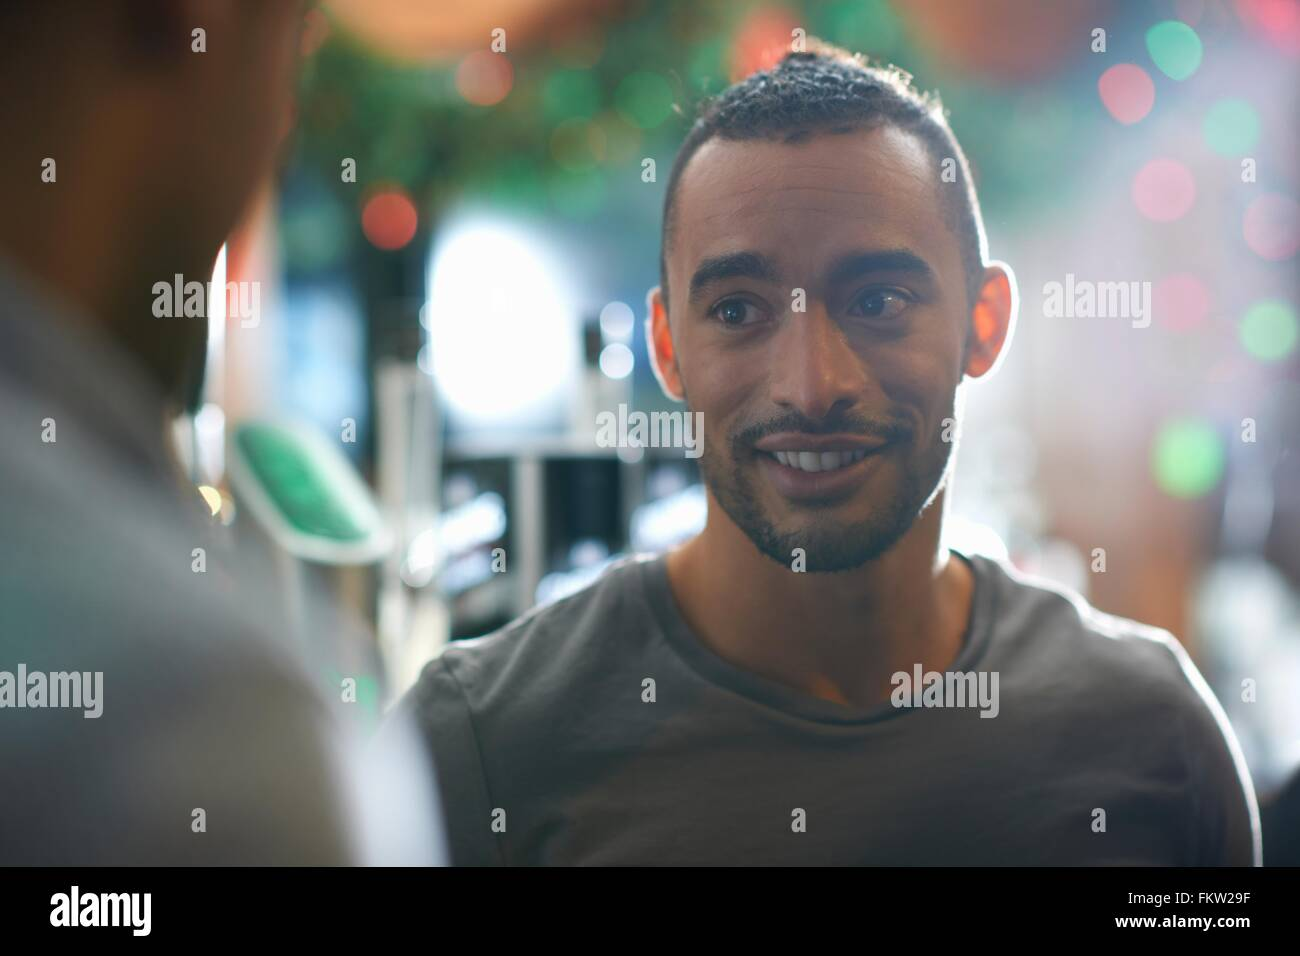 Young man in public house looking away smiling Stock Photo